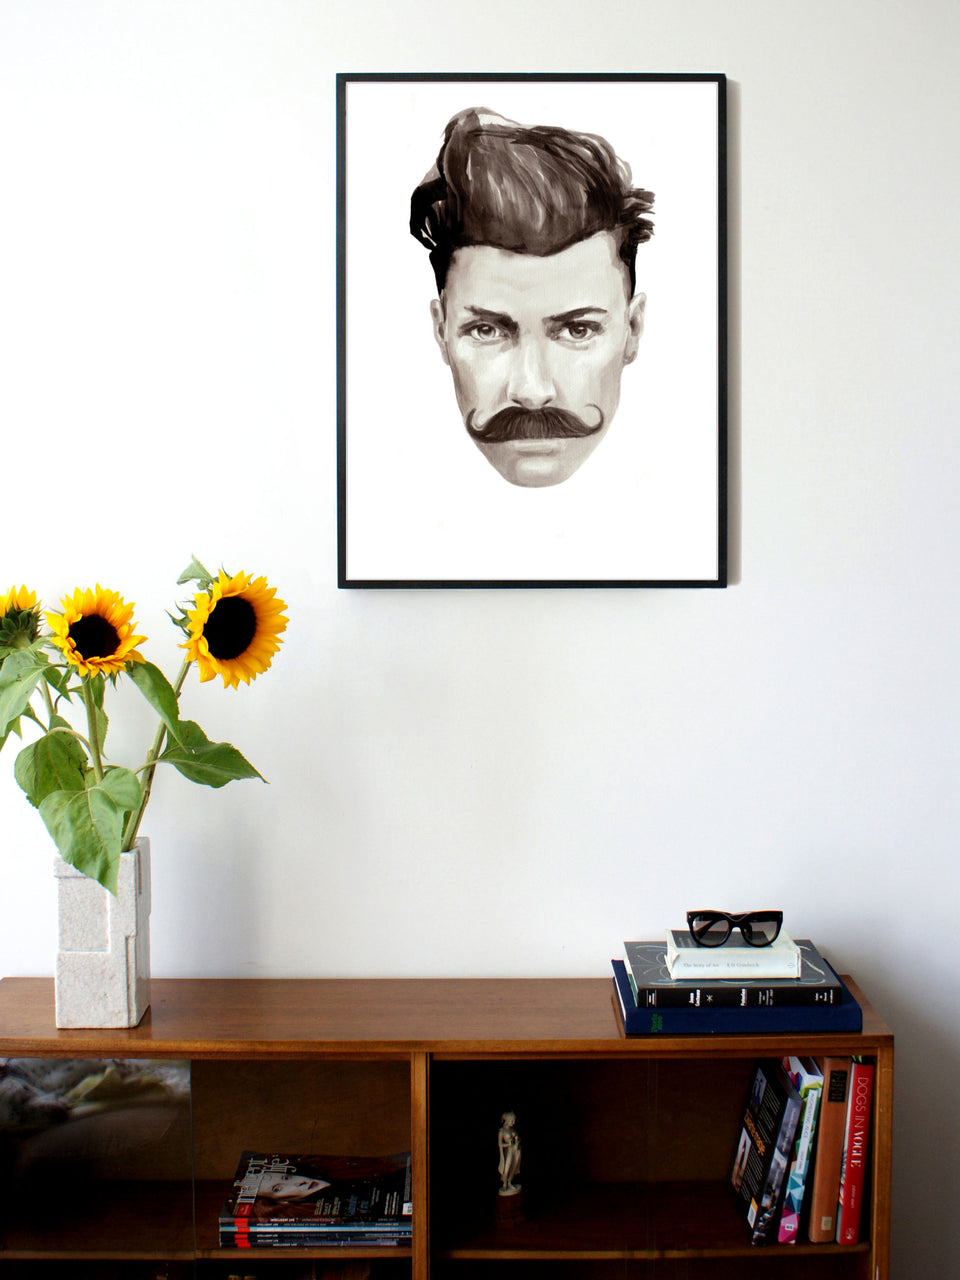 Fashion illustration print of Gentleman Portrait by Sjoukje Bierma - man with moustache and quiff - 60 x 80 cm framed